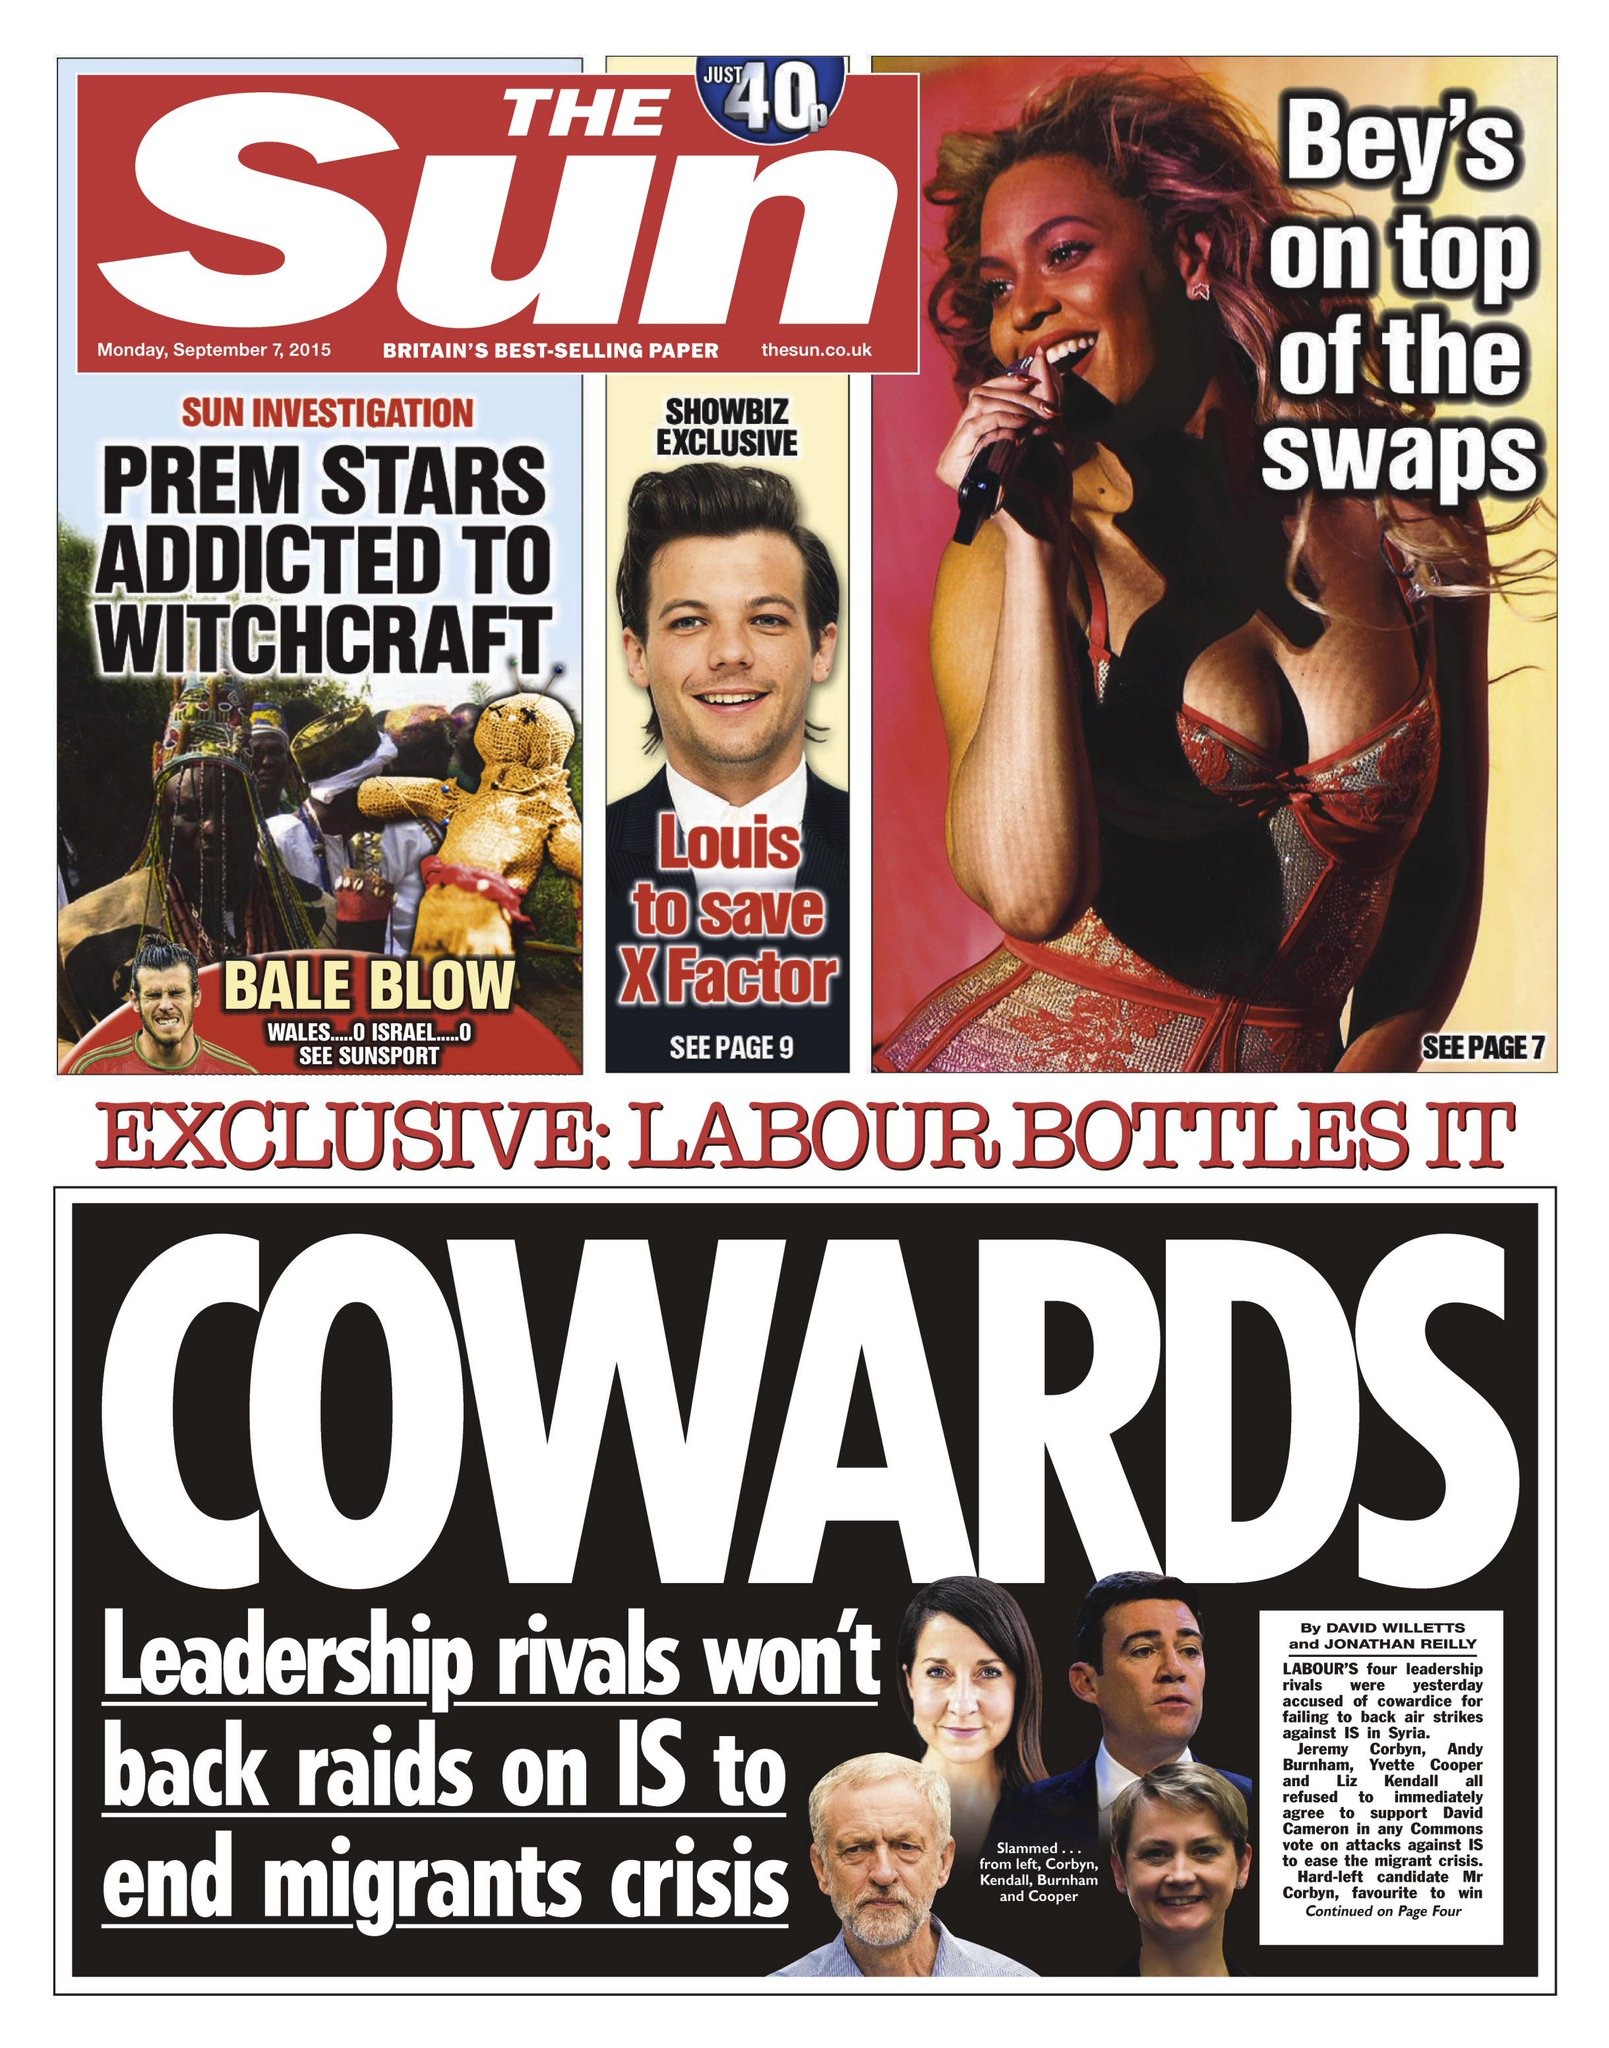 Monday's Sun Exclusive  Cowards - Leadership rivals won't back raid on IS to end migrant crisis #tomorrowspaperstoday http://t.co/cgfh6dBfId